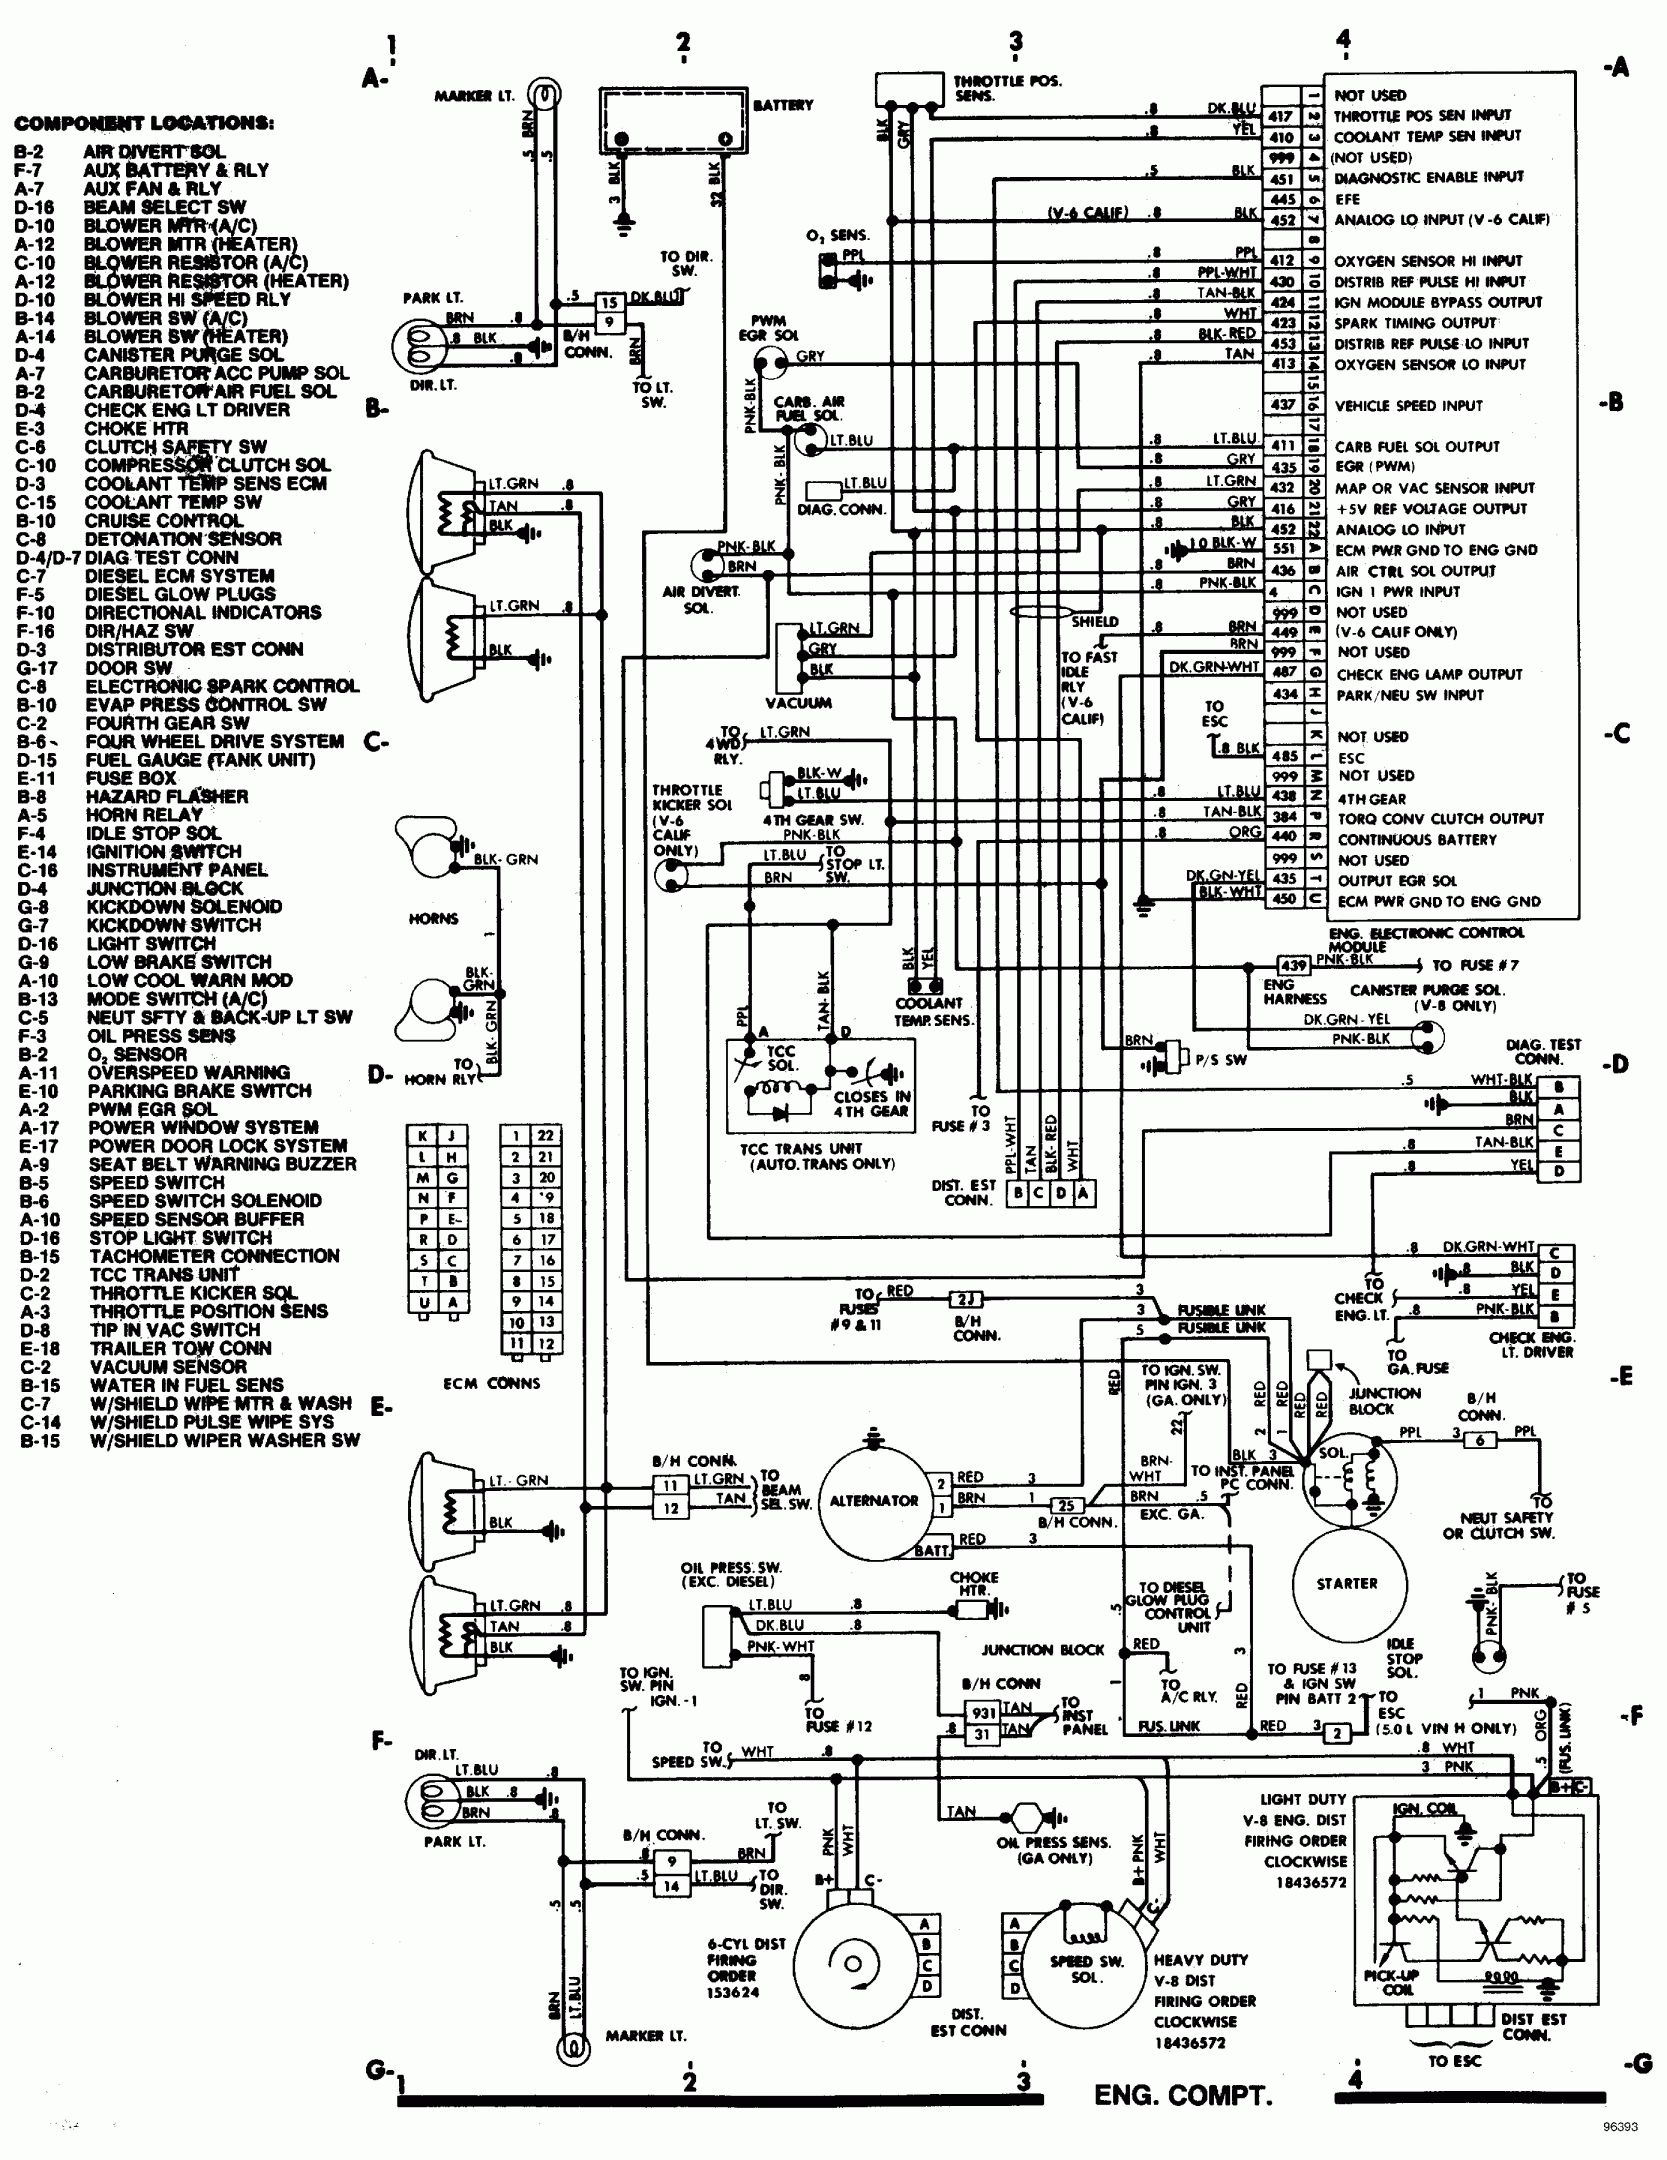 15+ 1984 Chevy Truck Electrical Wiring Diagram - Truck Diagram -  Wiringg.net in 2020 | Electrical wiring diagram, Chevy trucks, 1985 chevy  truckPinterest